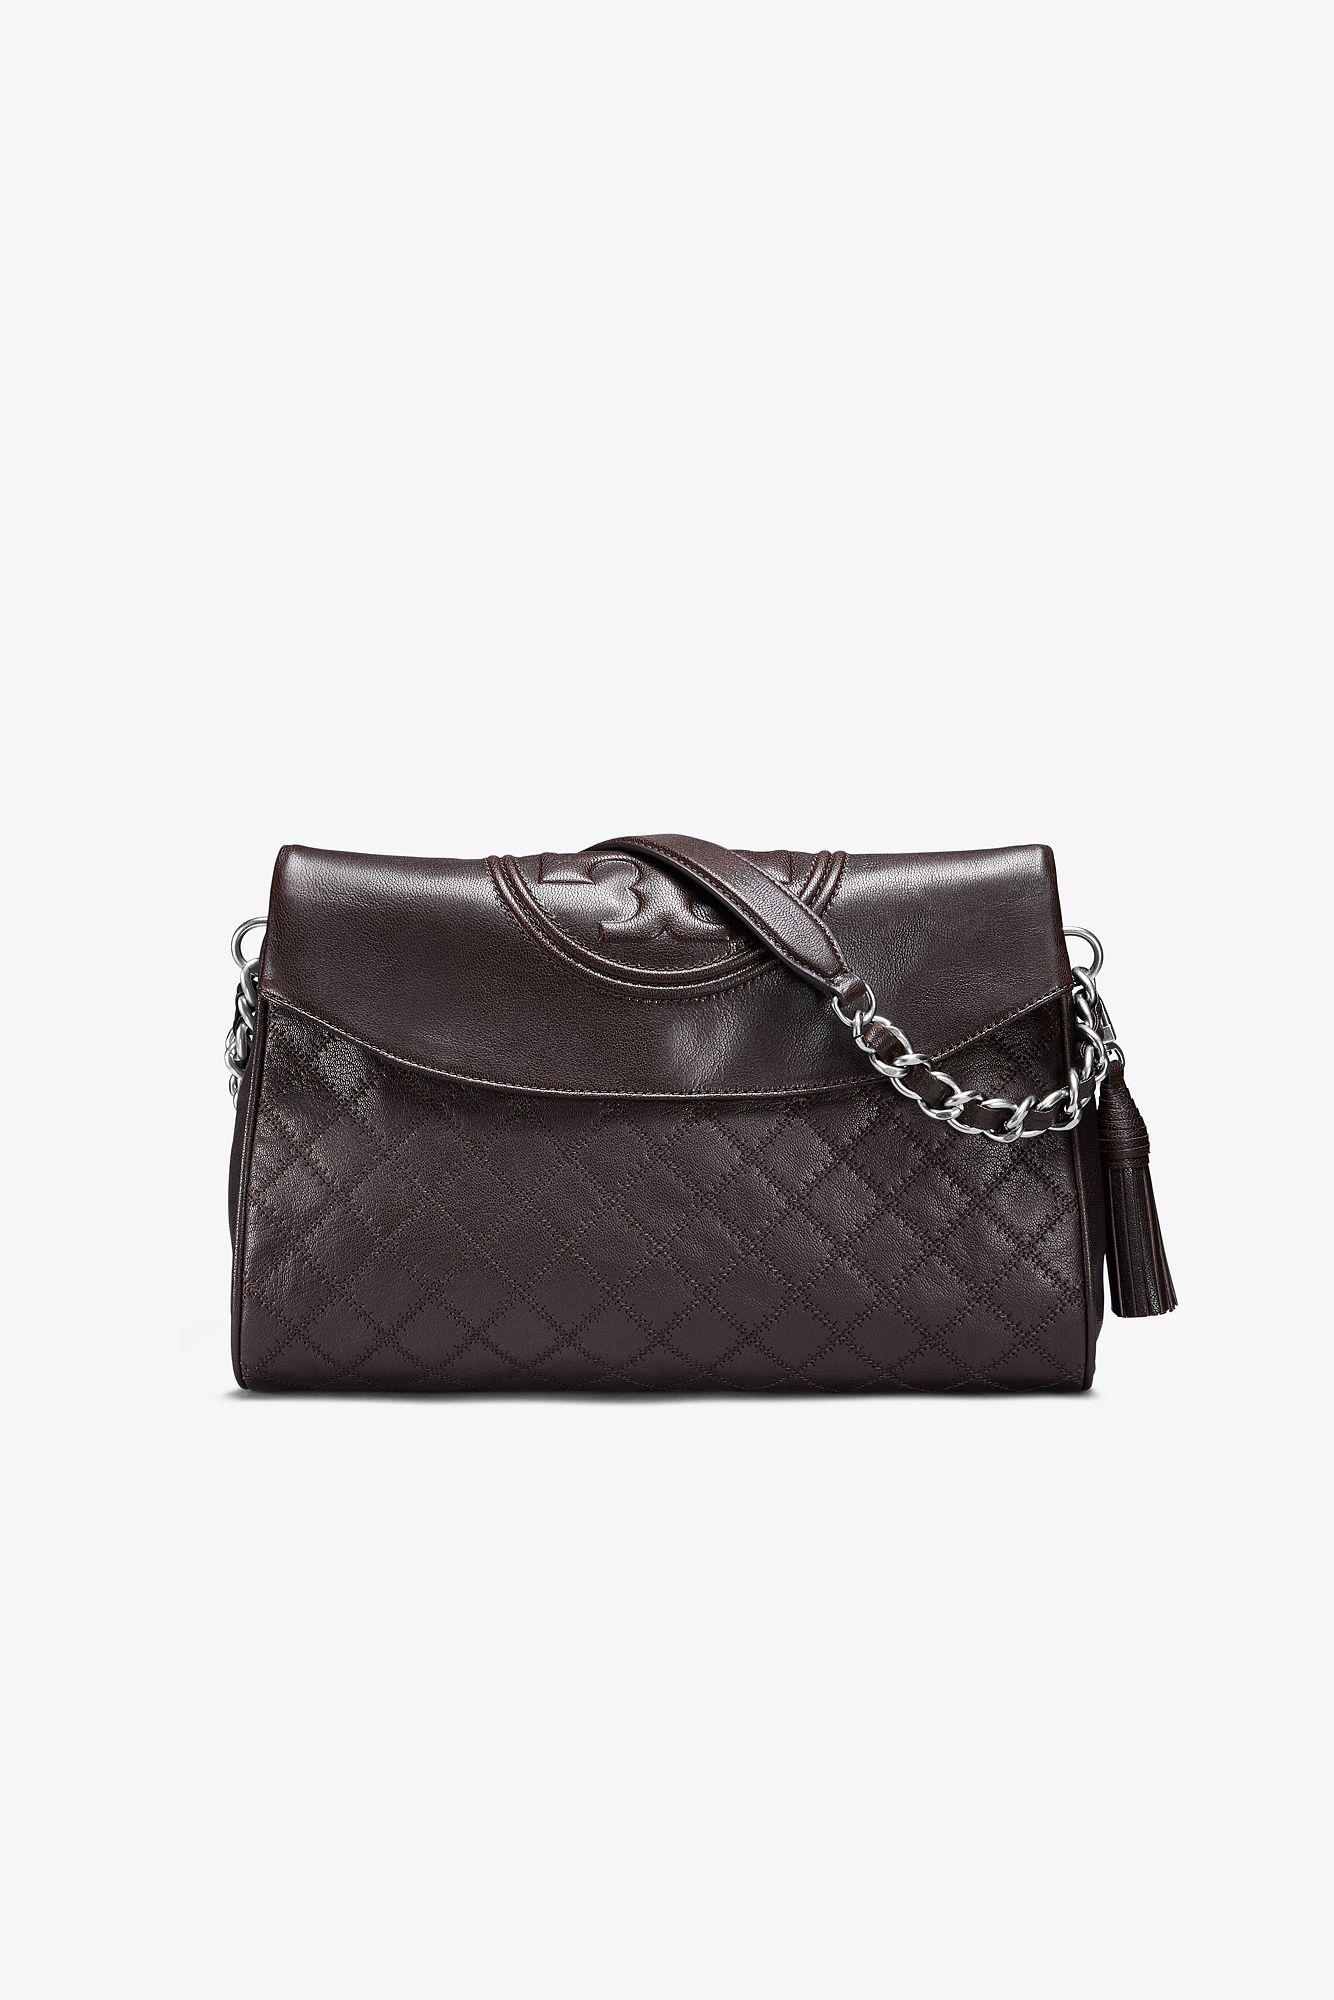 15d2e8b14fb ... bags and baggage be3a6 ed9e4; purchase tory burch fleming distressed  leather fold over hobo lyst 0b380 5355b